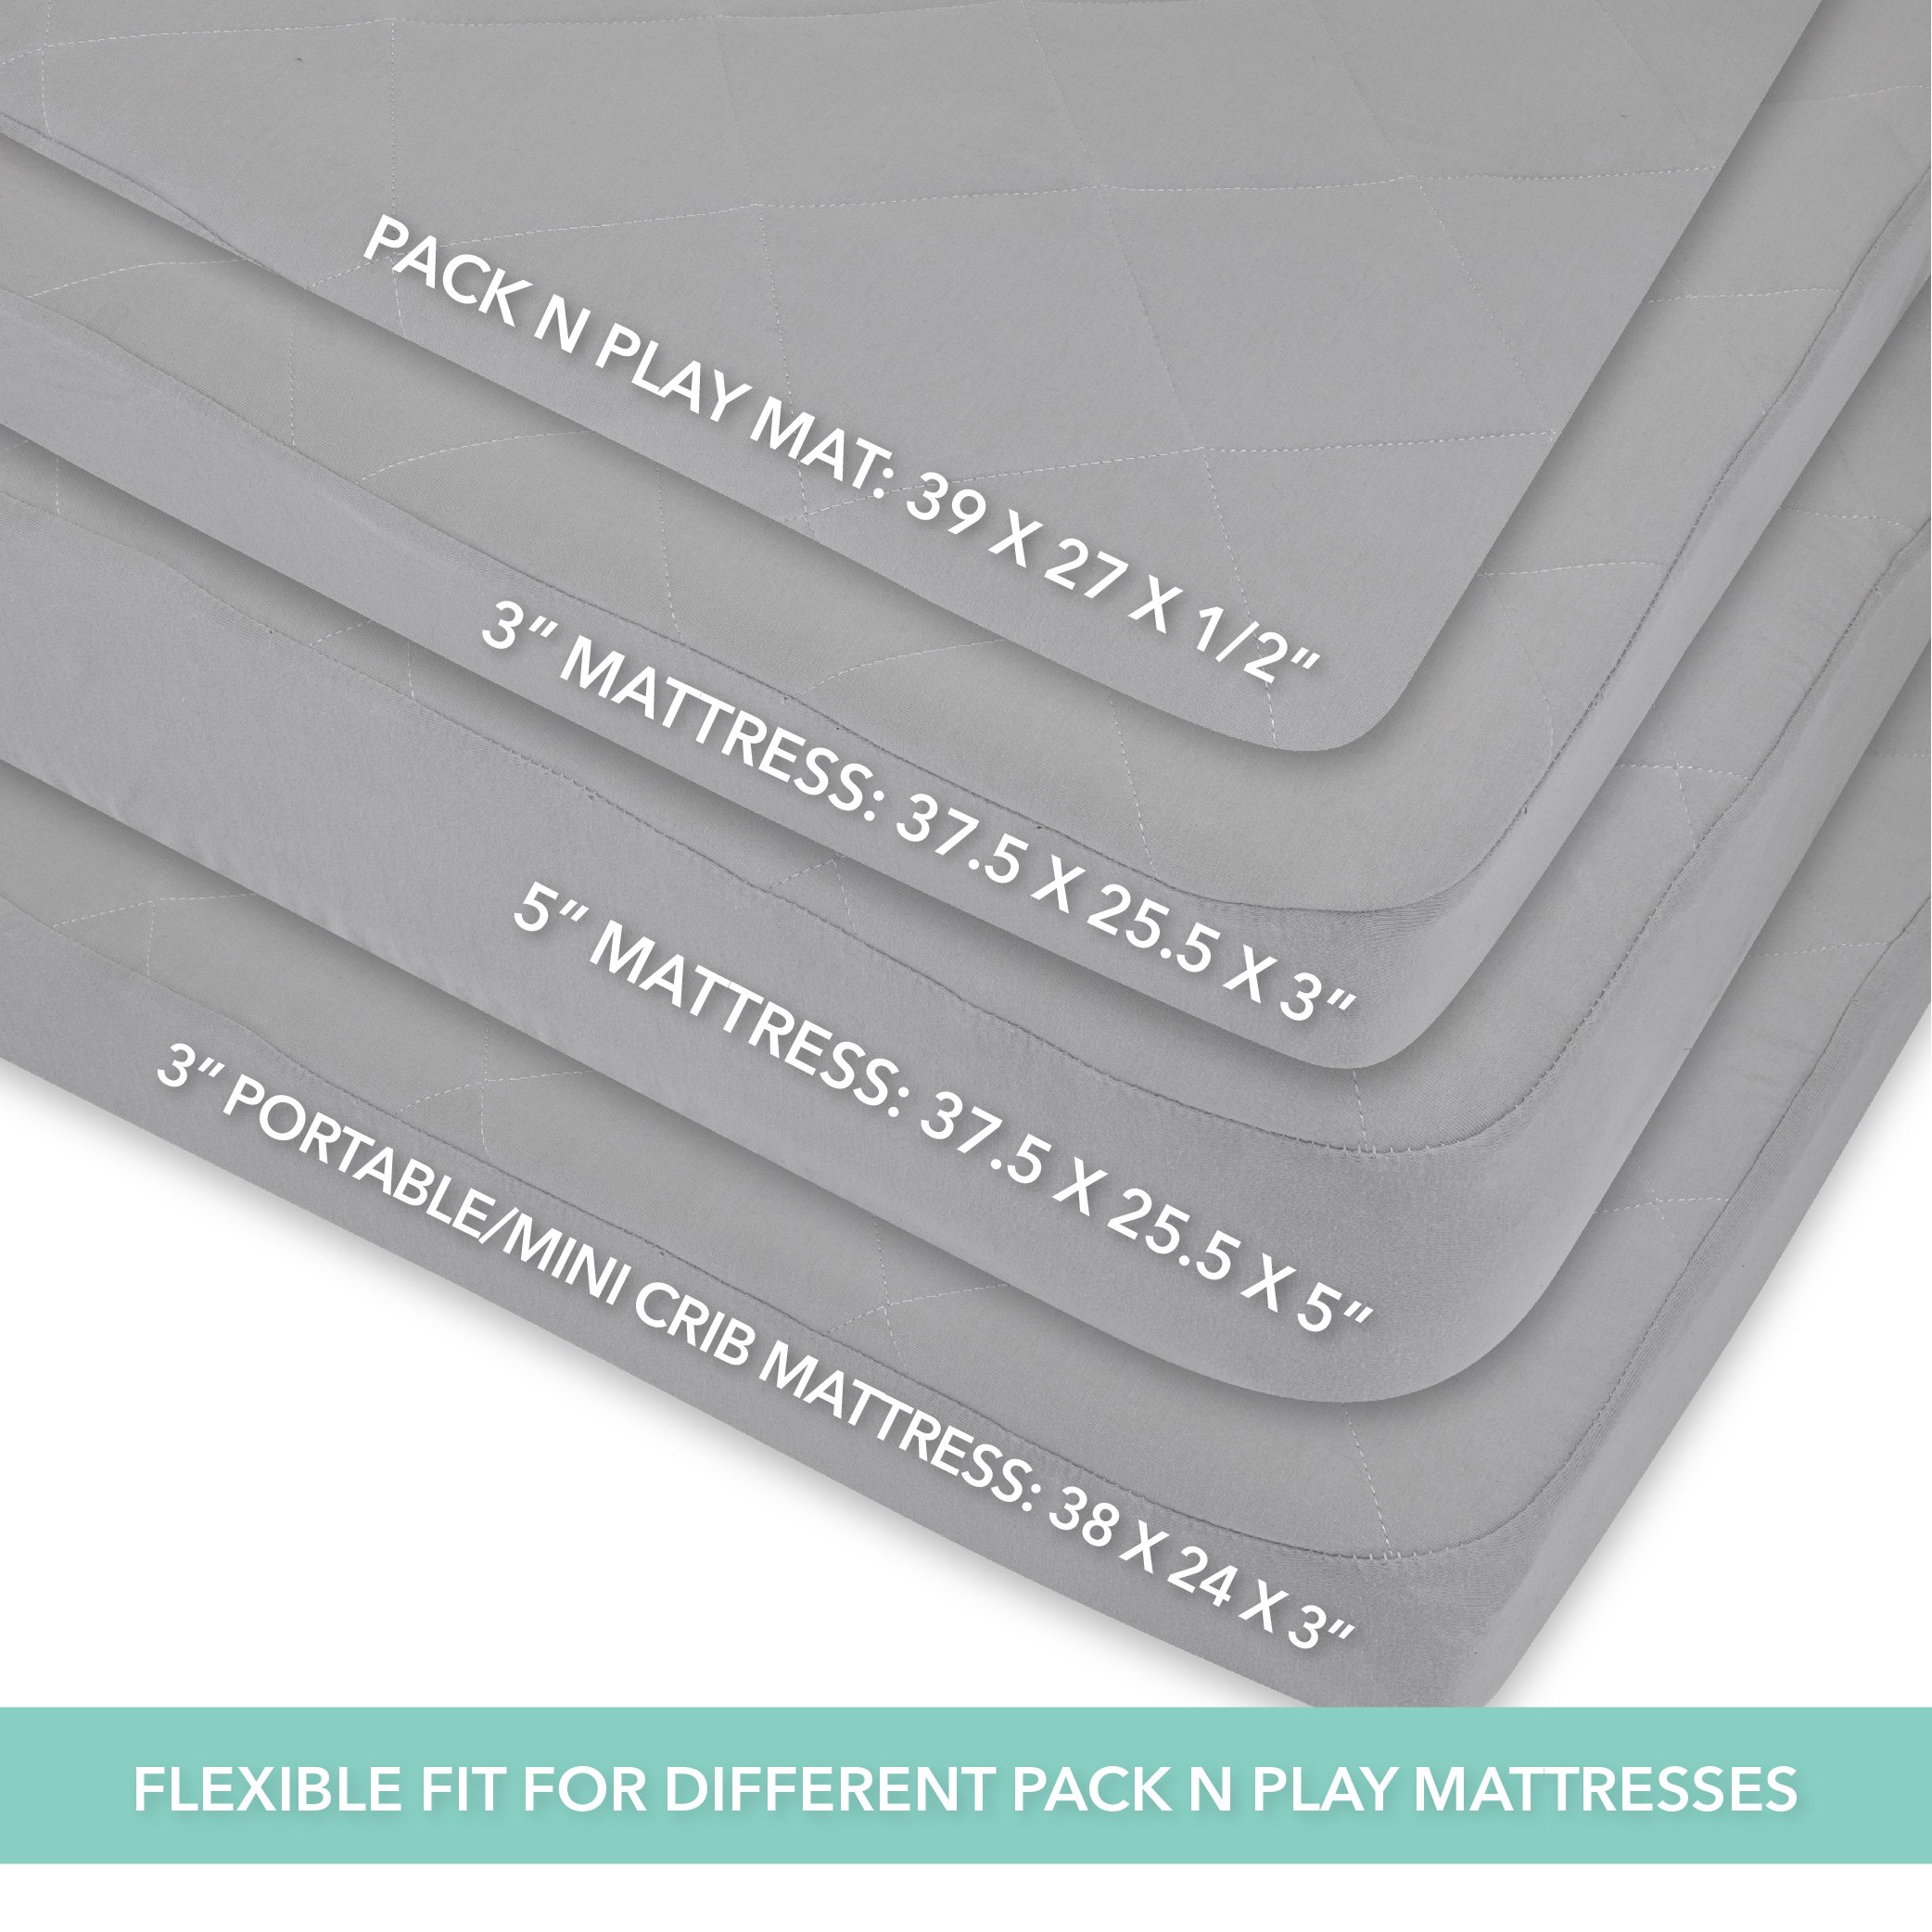 Waterproof Cotton Quilted Pack n Play Sheet | Mini Crib Sheet | New Revised Fit with Added Heat Protection |All in one Mattress Pad Cover and Cozy Sheet, Grey by Ely's & Co by Ely's & Co. (Image #5)